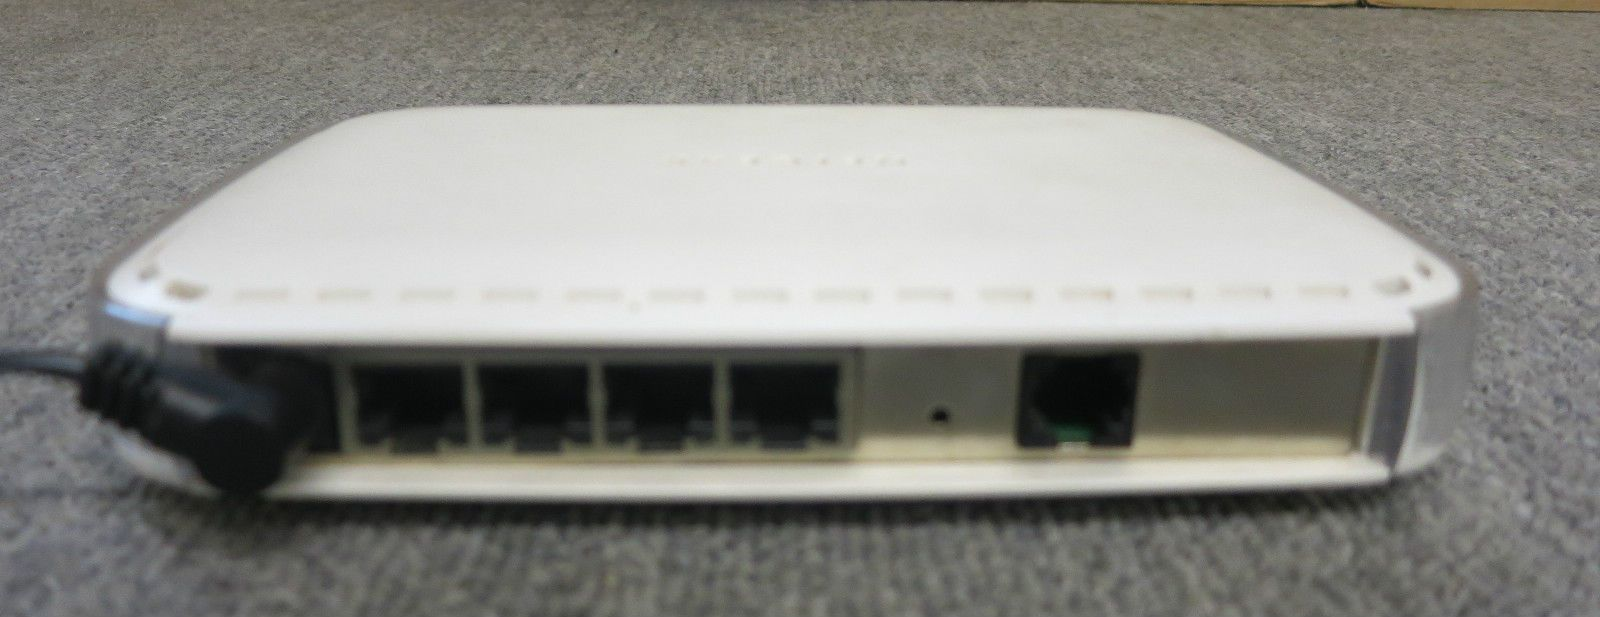 Netgear DG834 V2 Wired ADSL Firewall Router with 4-port 10 100 ...